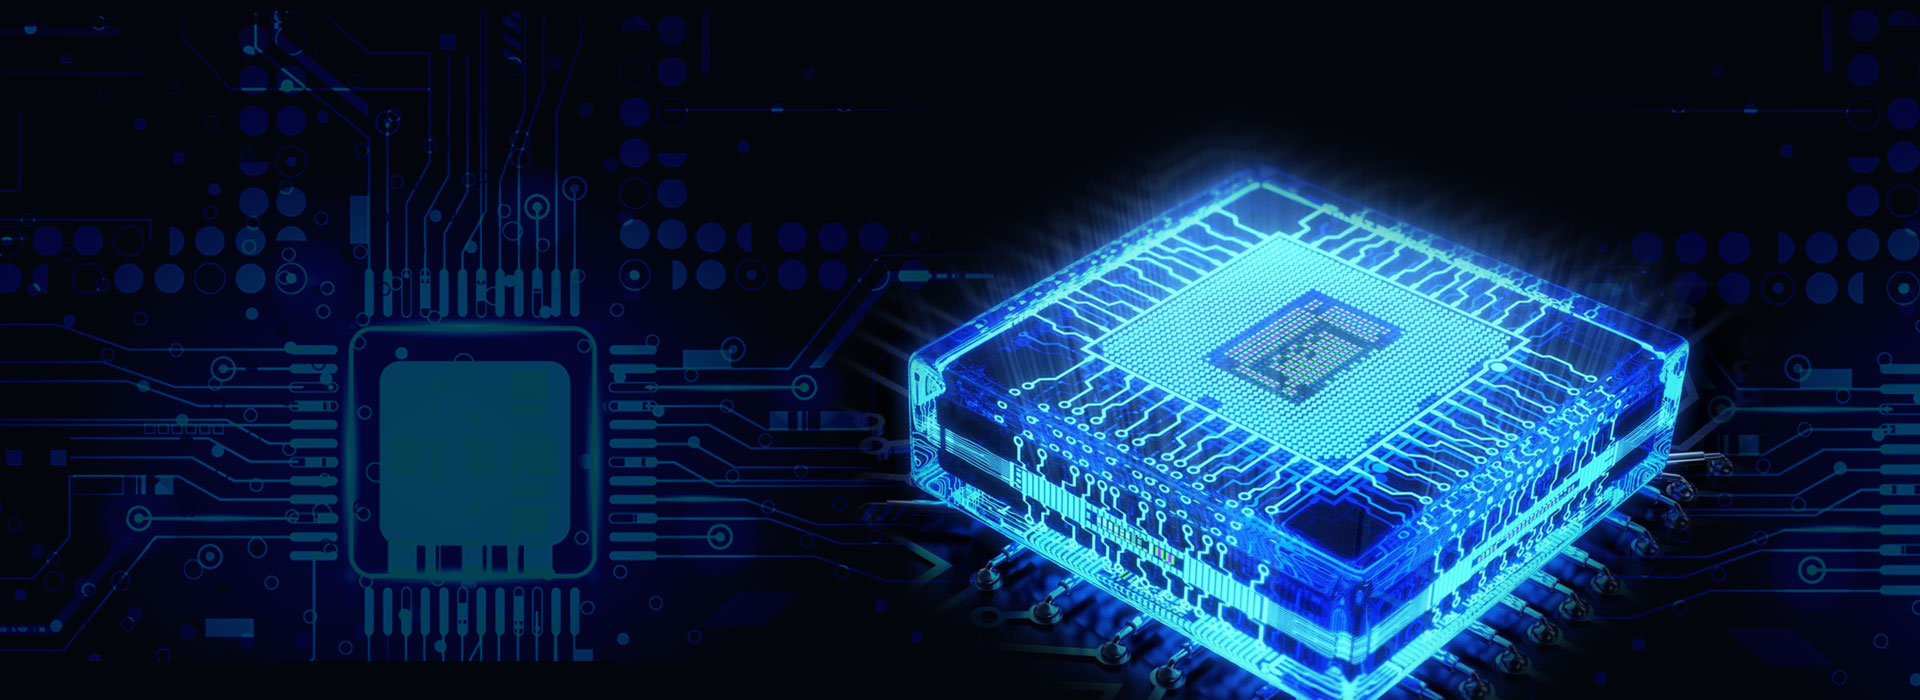 VLSI Courses- EDA Tools for PCB Design